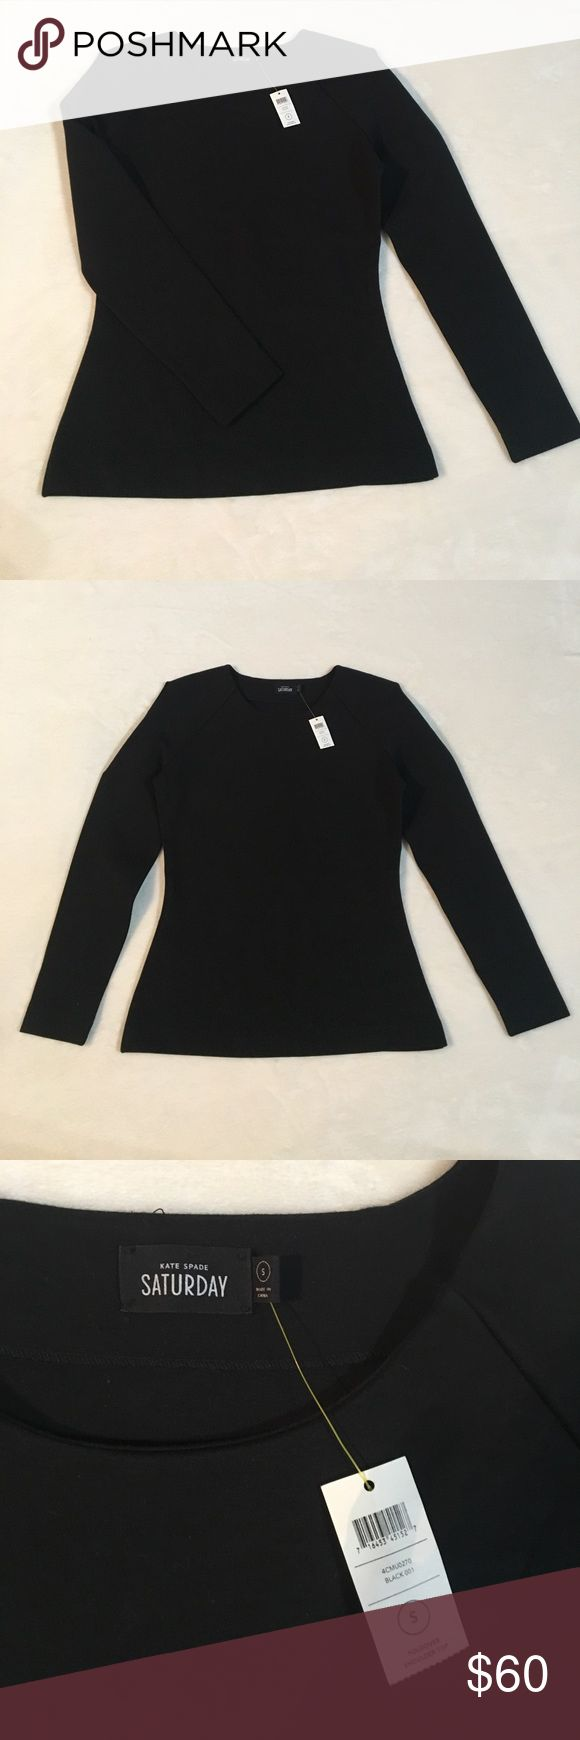 Kate Spade Saturday Fold over shoulder top Kate Spade Saturday Fold over shoulder top, brand new with tags! kate spade Tops Blouses